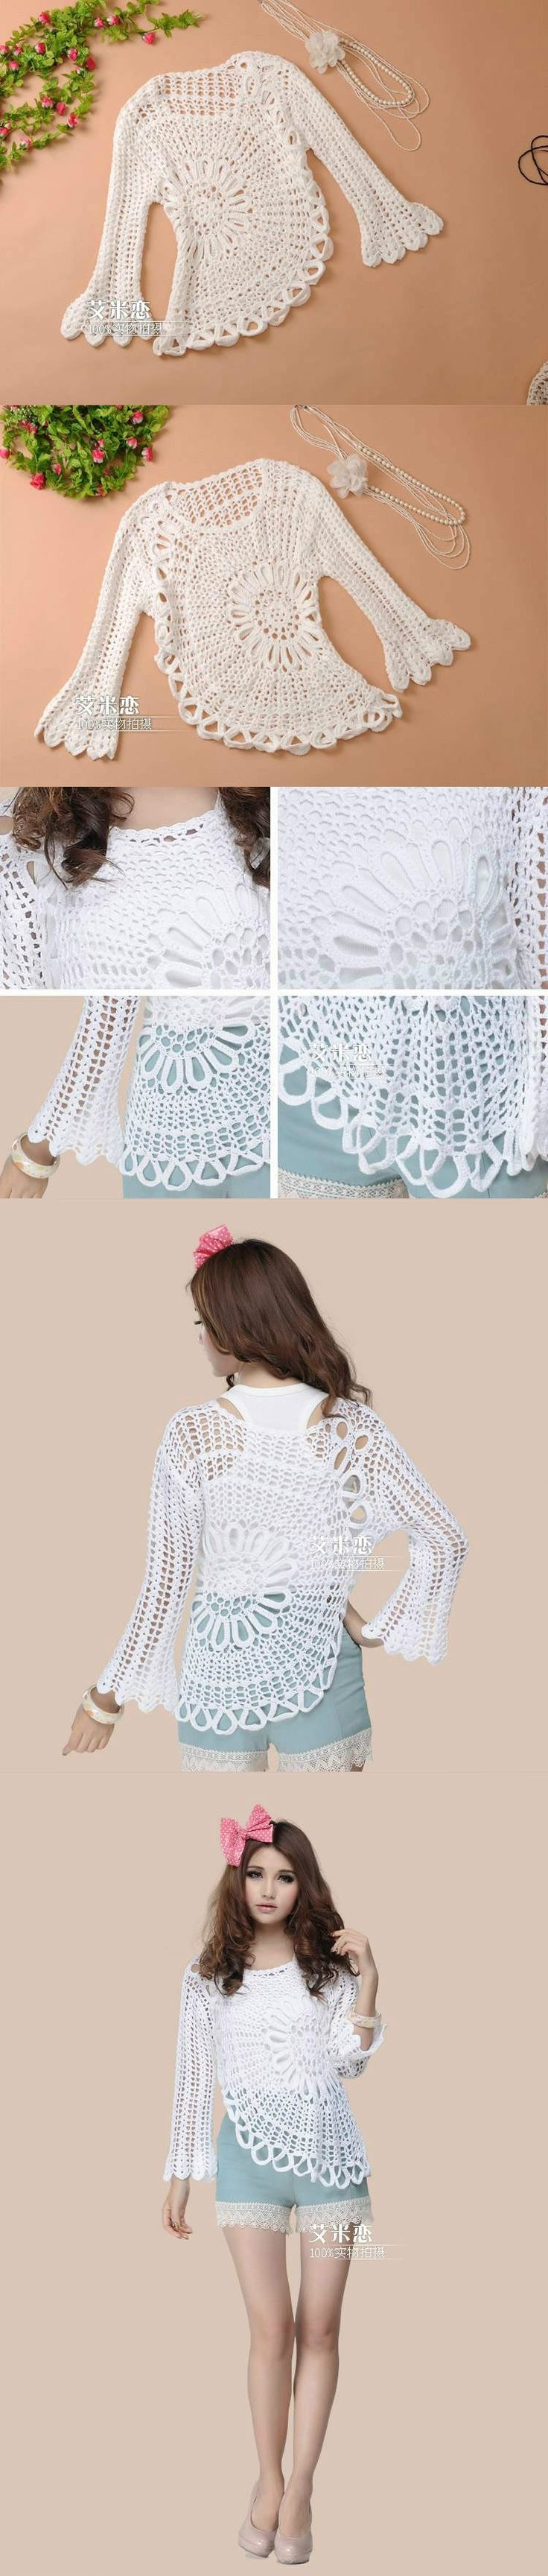 Blusa de verão assimétrica em crochê -the back of this doily might be a beautiful centerpiece